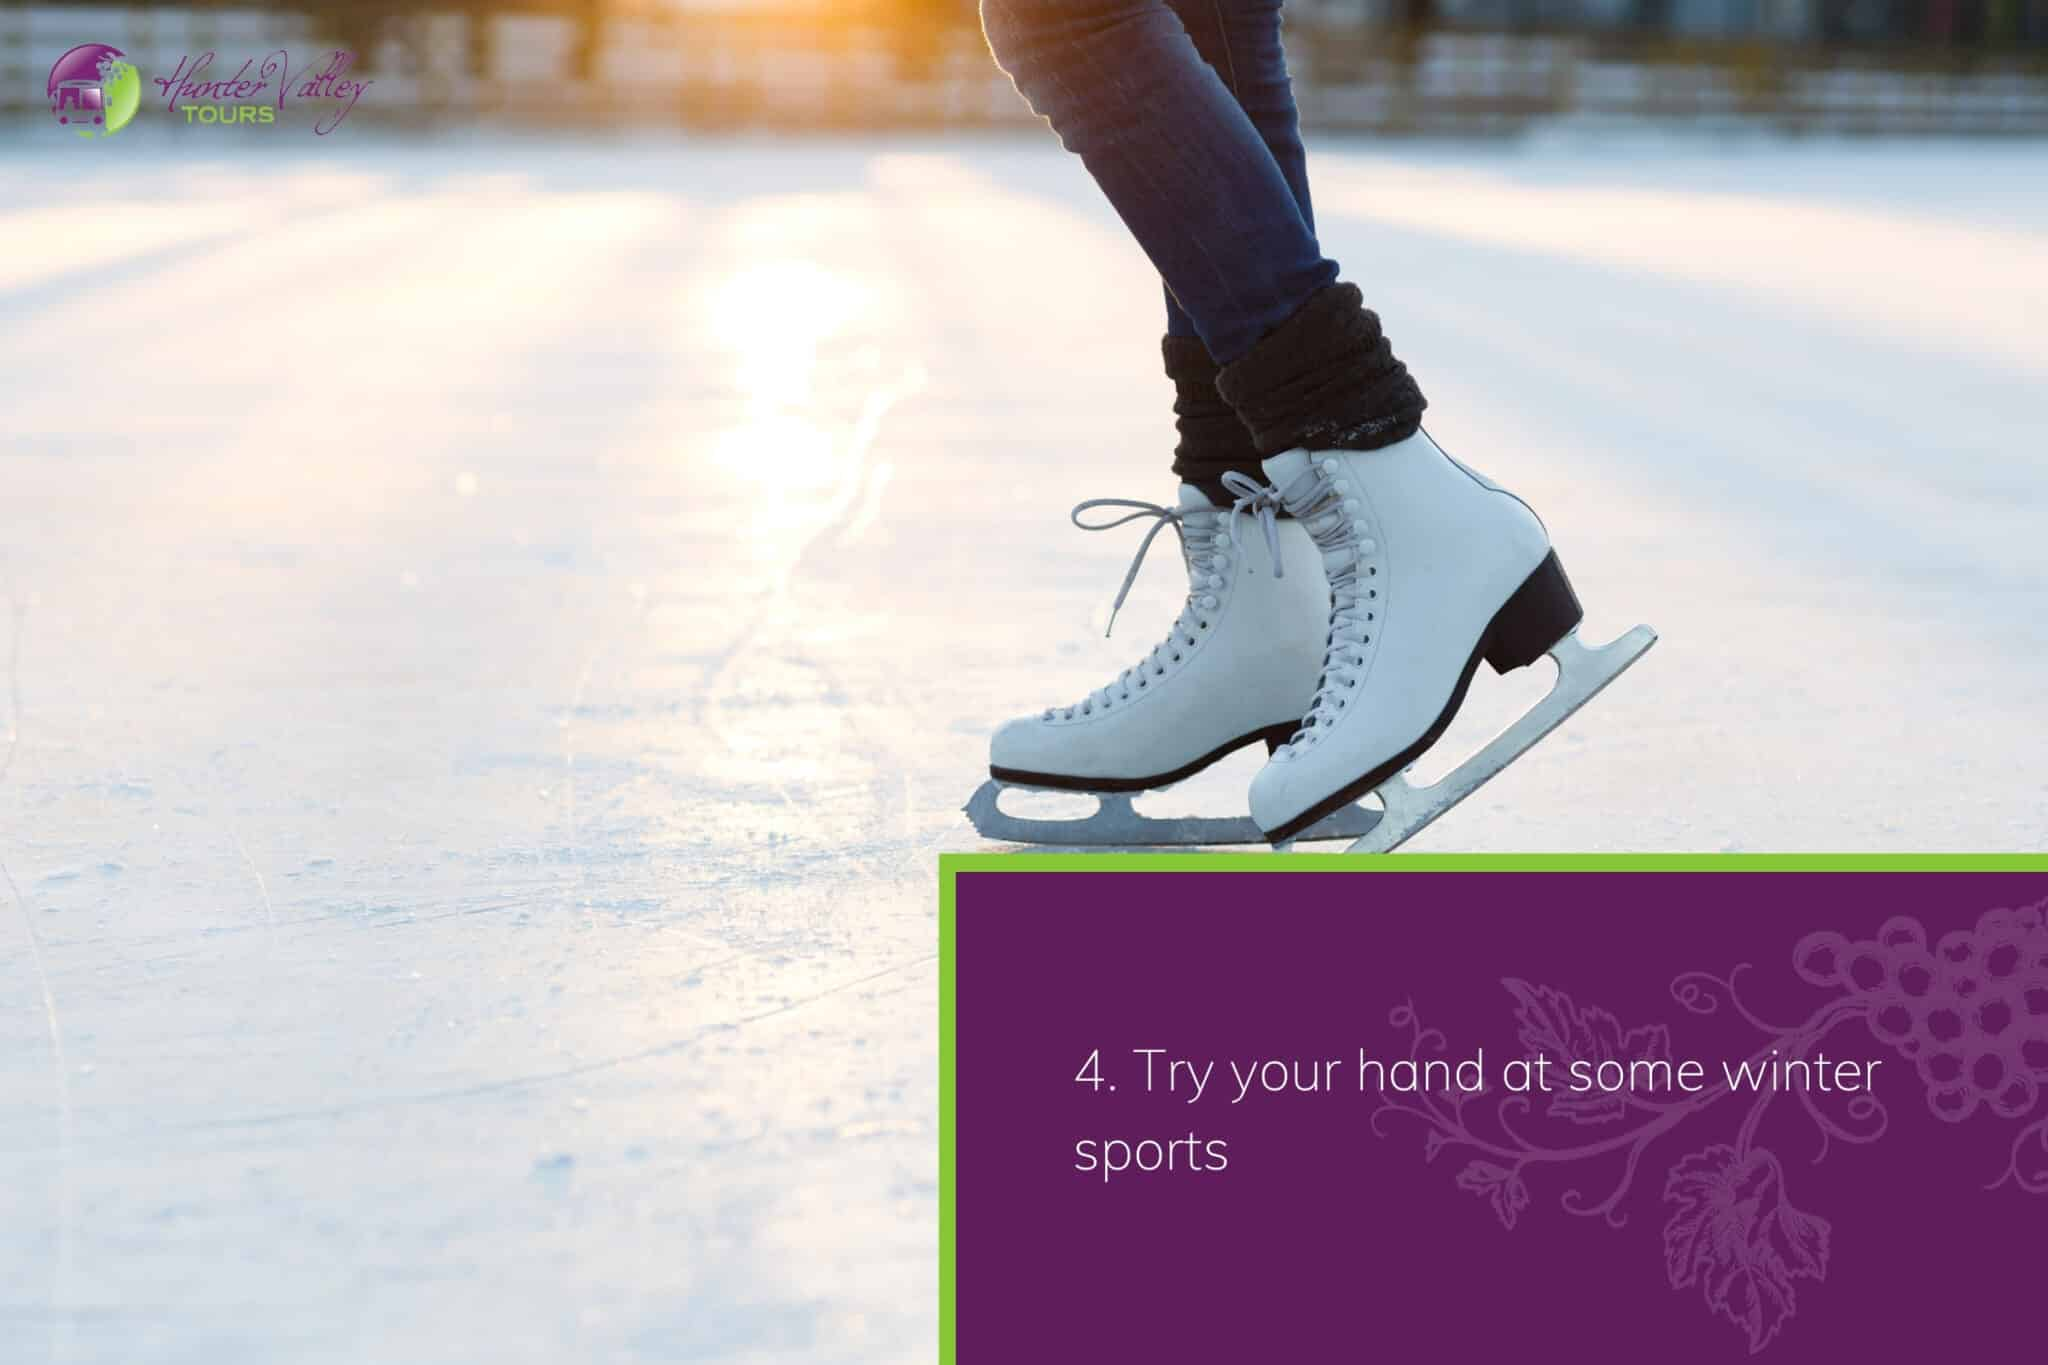 Try your hand at some winter sports